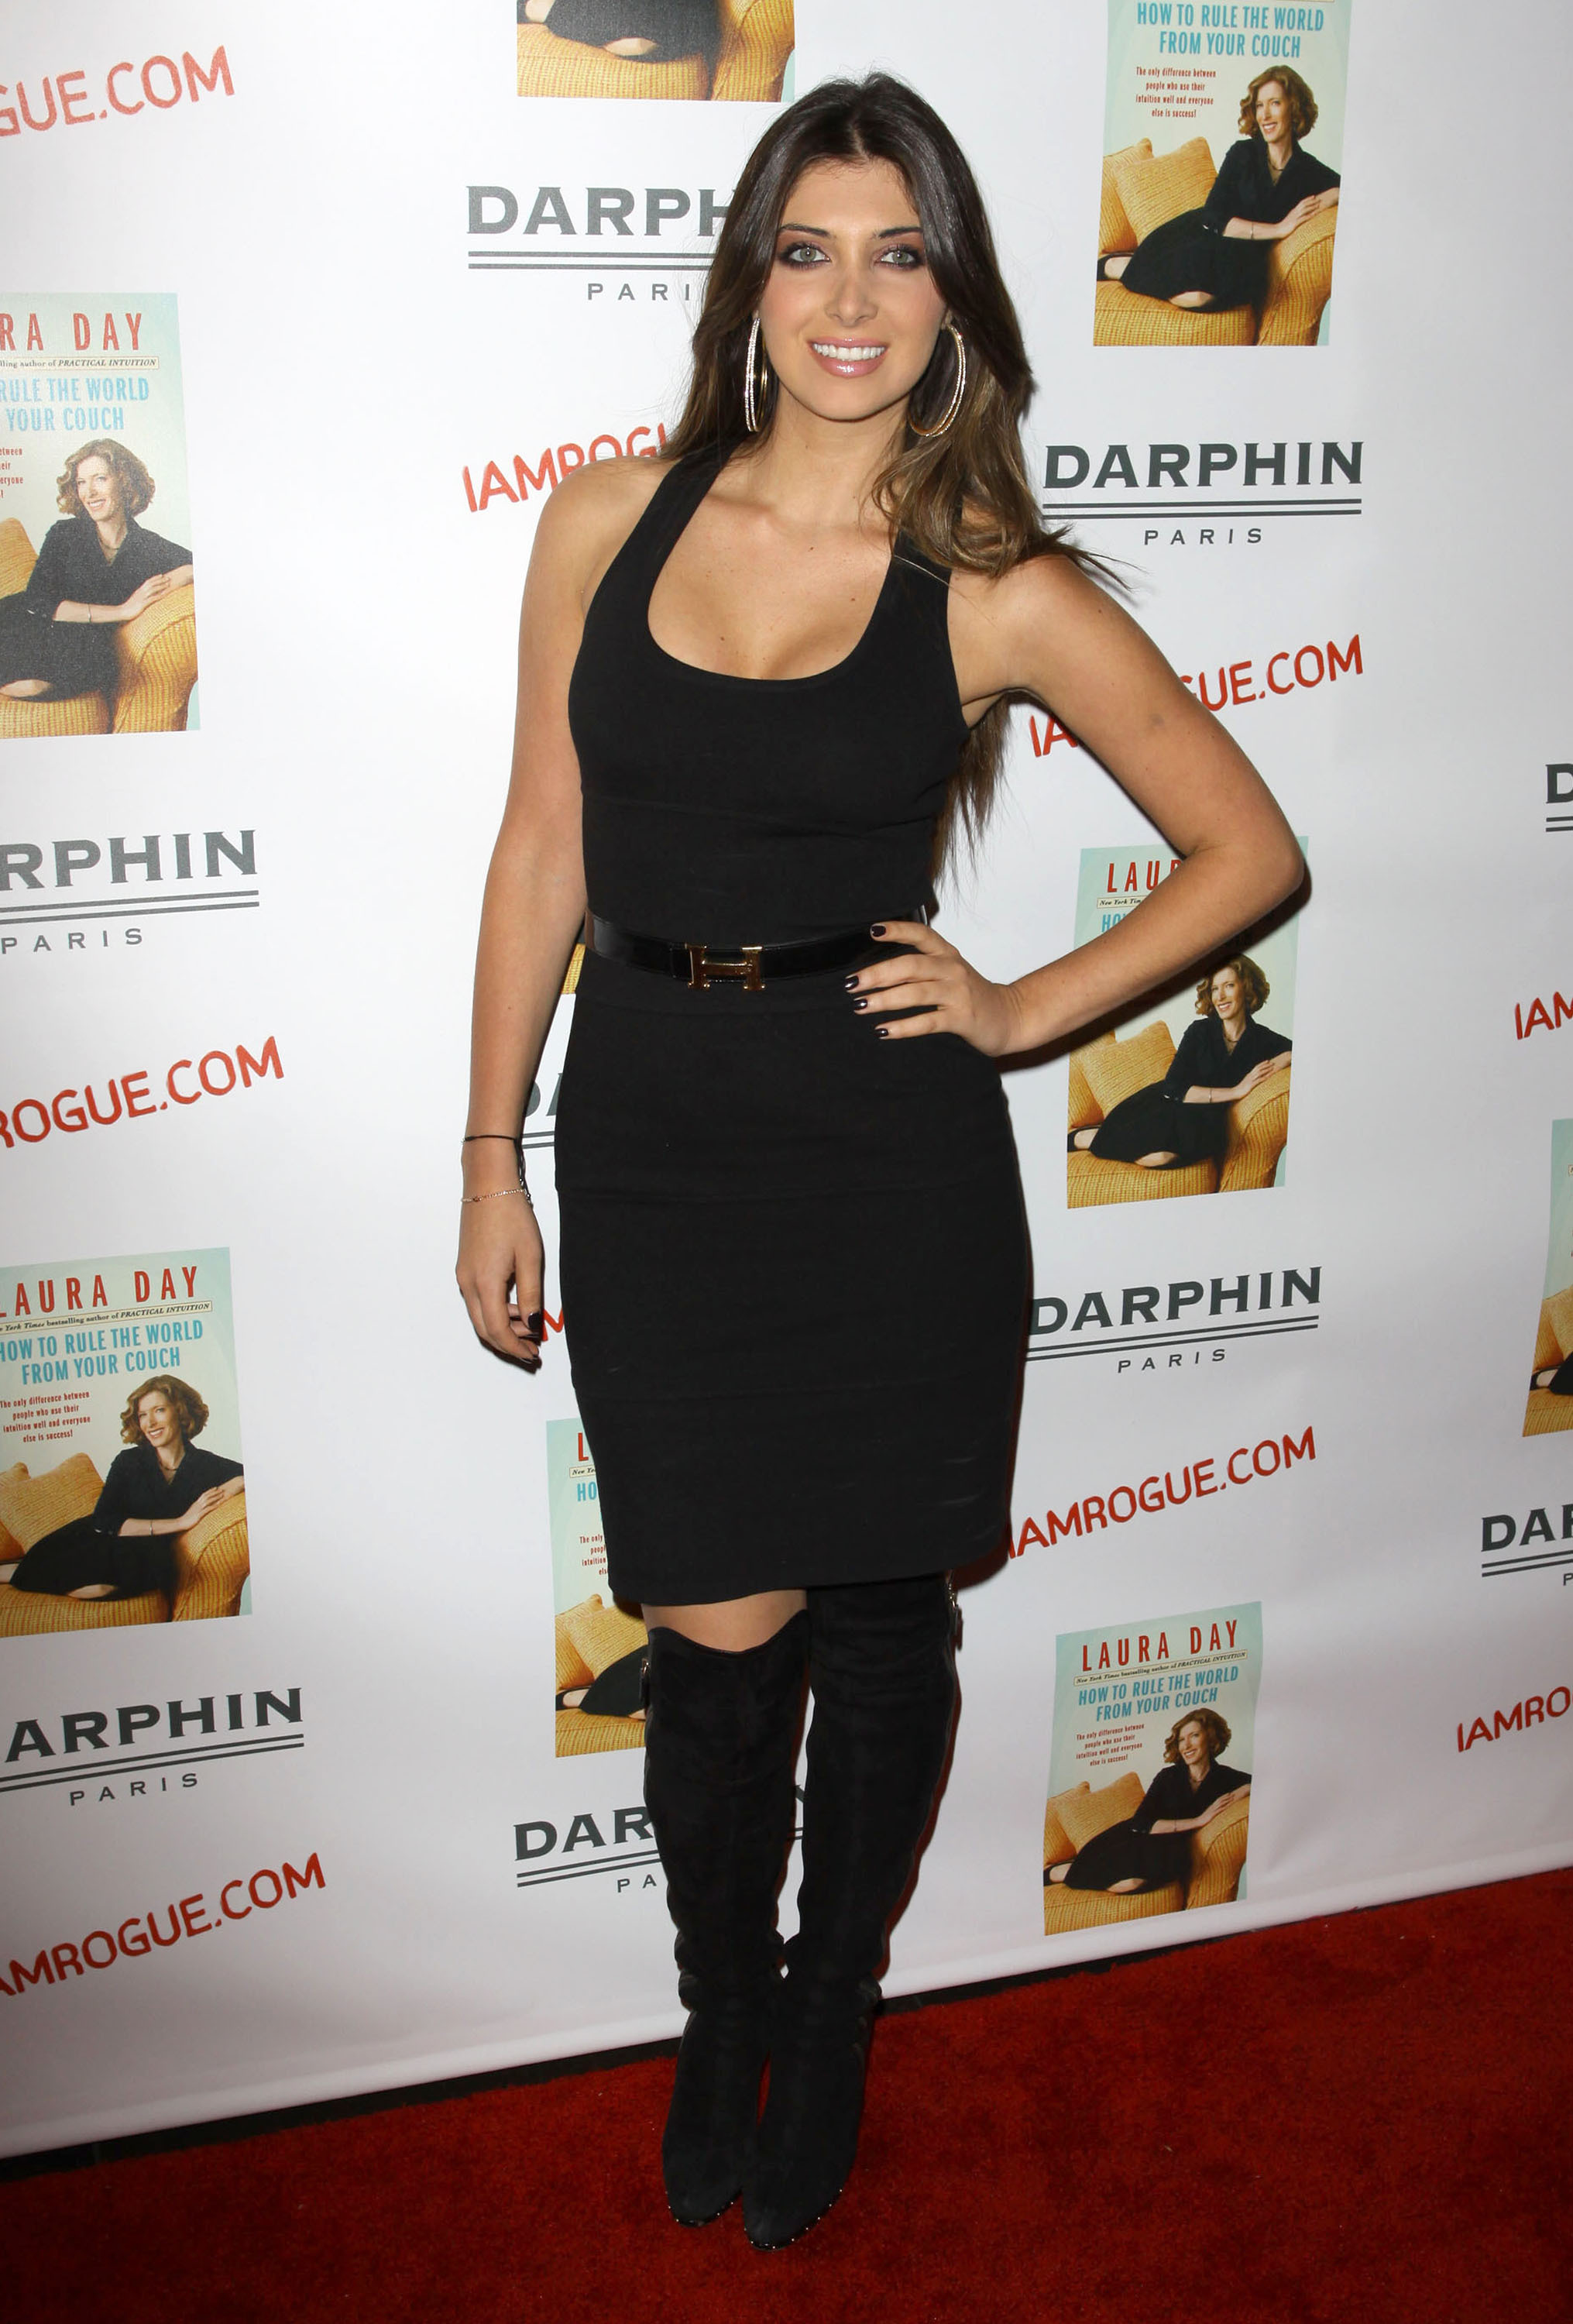 02397_celebrity-paradise.com-The_Elder-Brittny_Gastineau_2009-10-19_-_Book_Party_For_Laura_Day_243_122_25lo.jpg